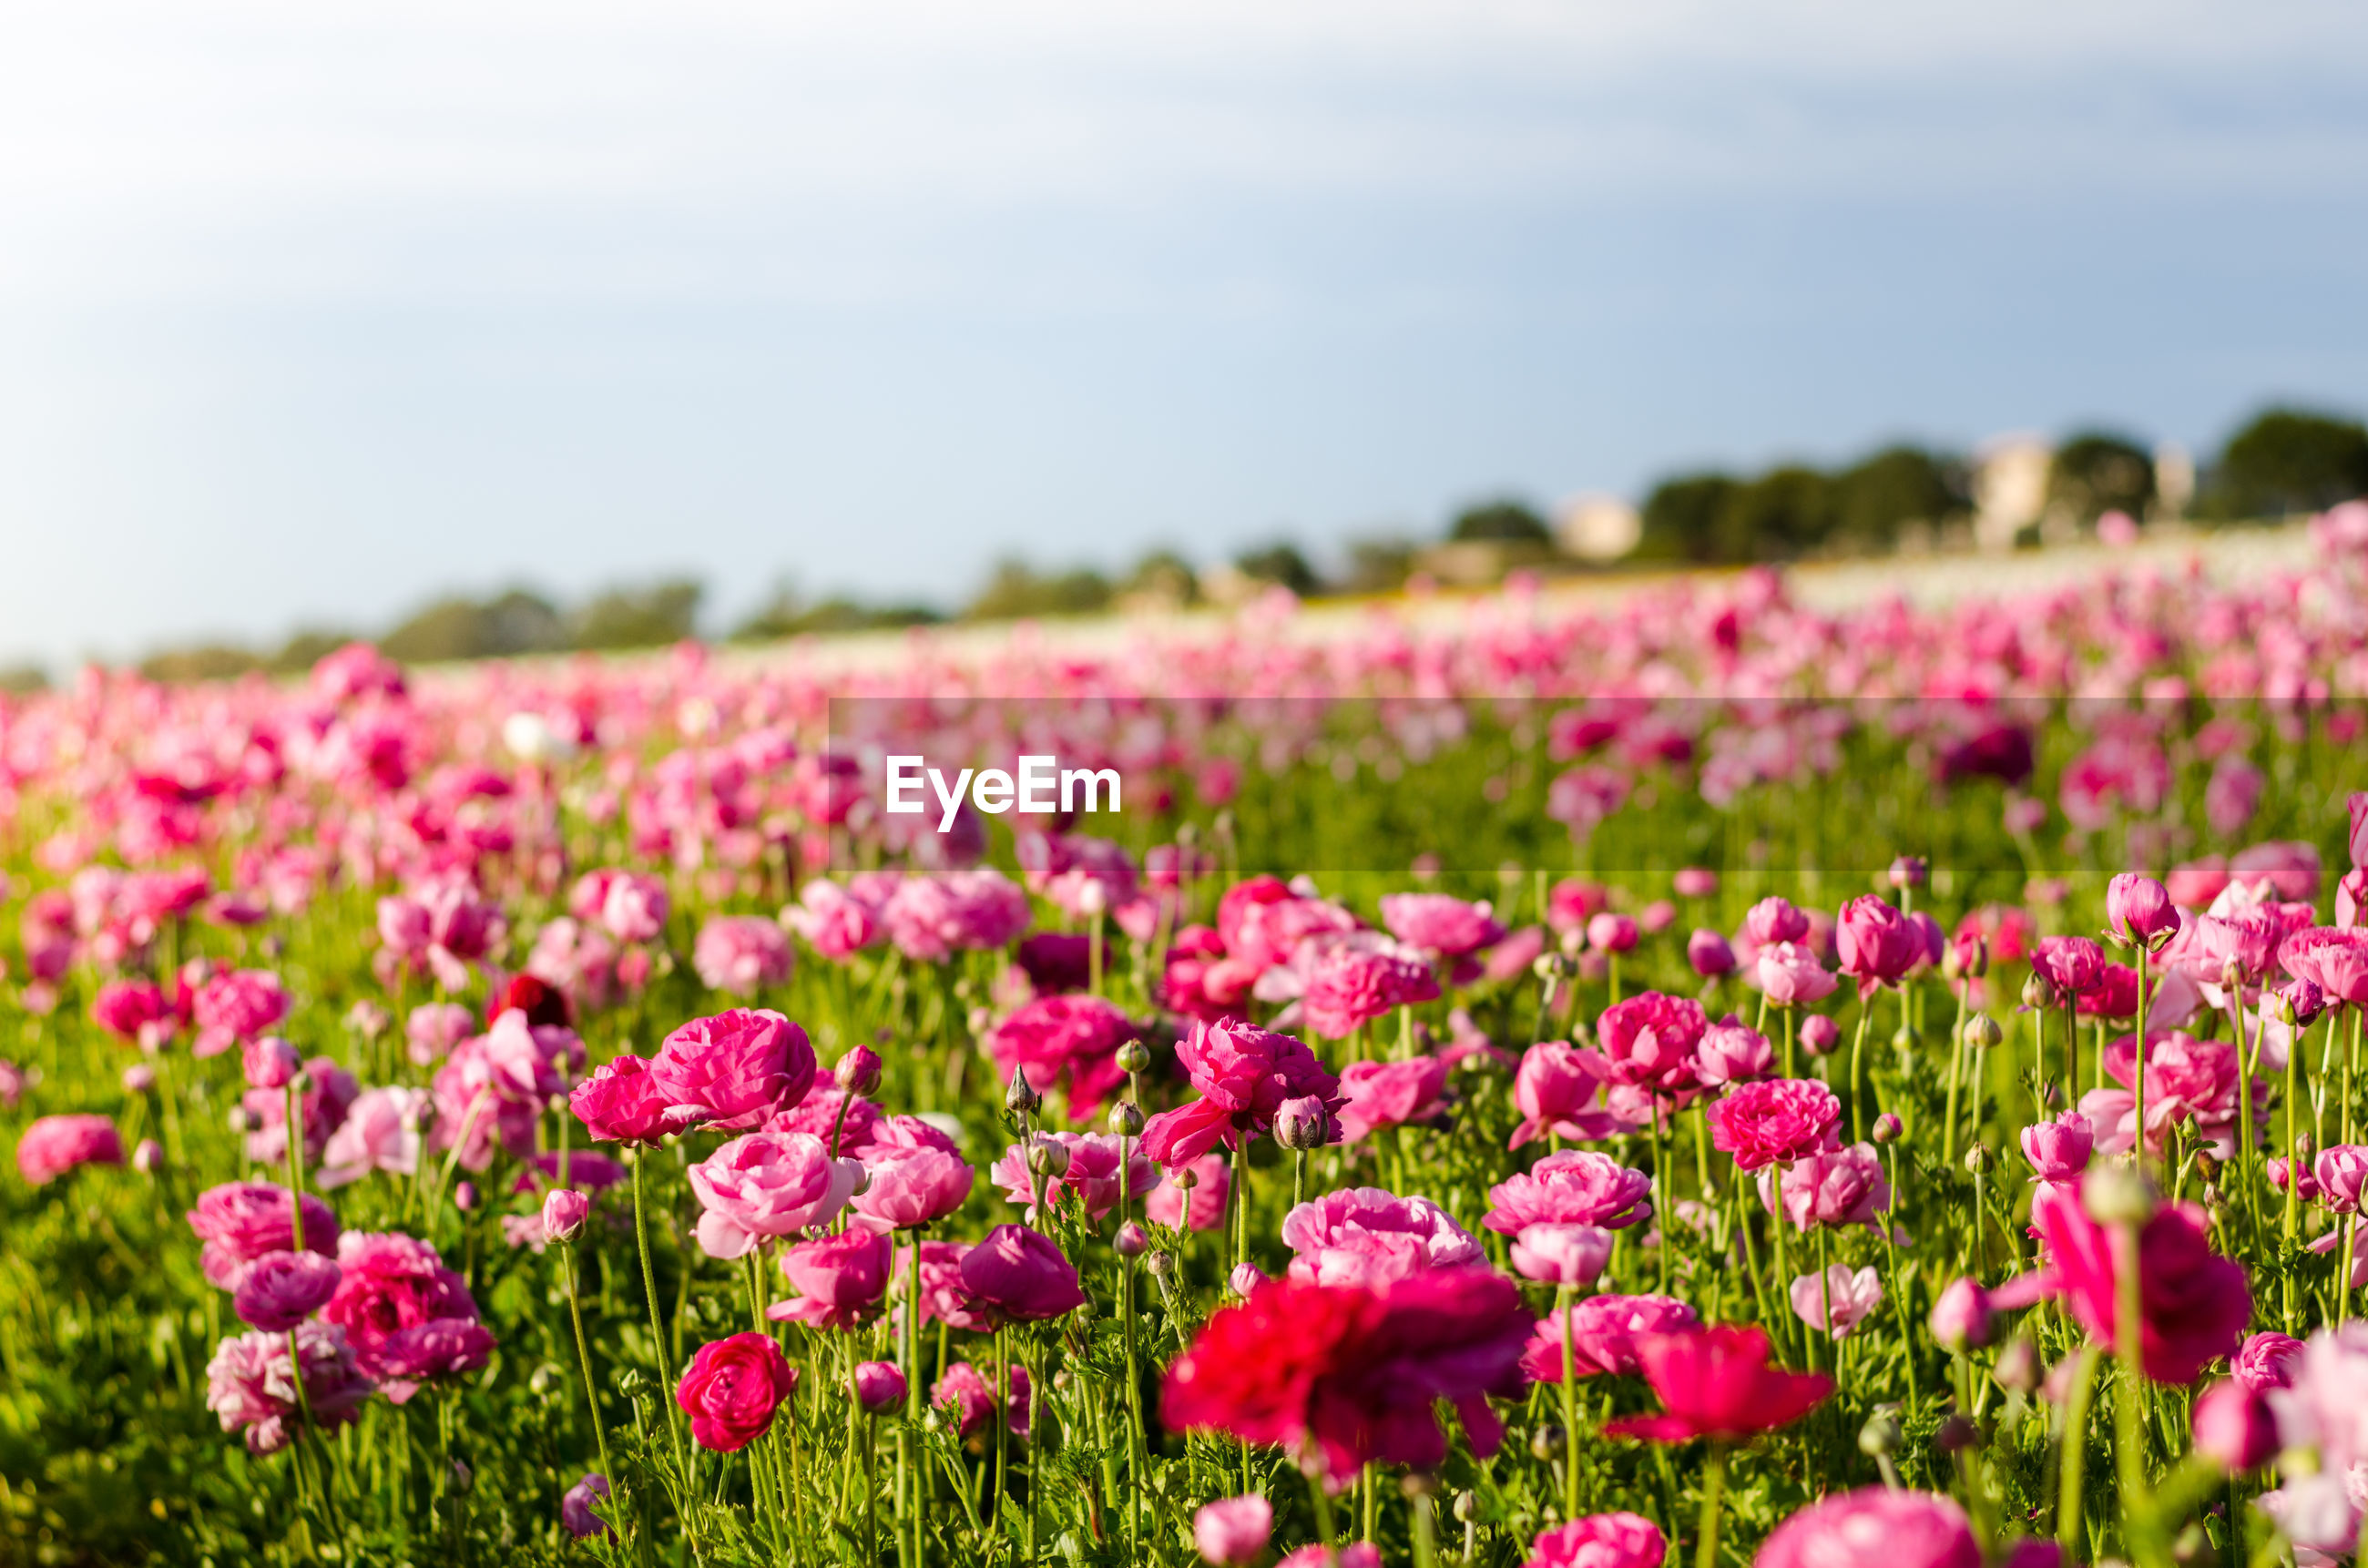 Close-up of pink flowers blooming in field